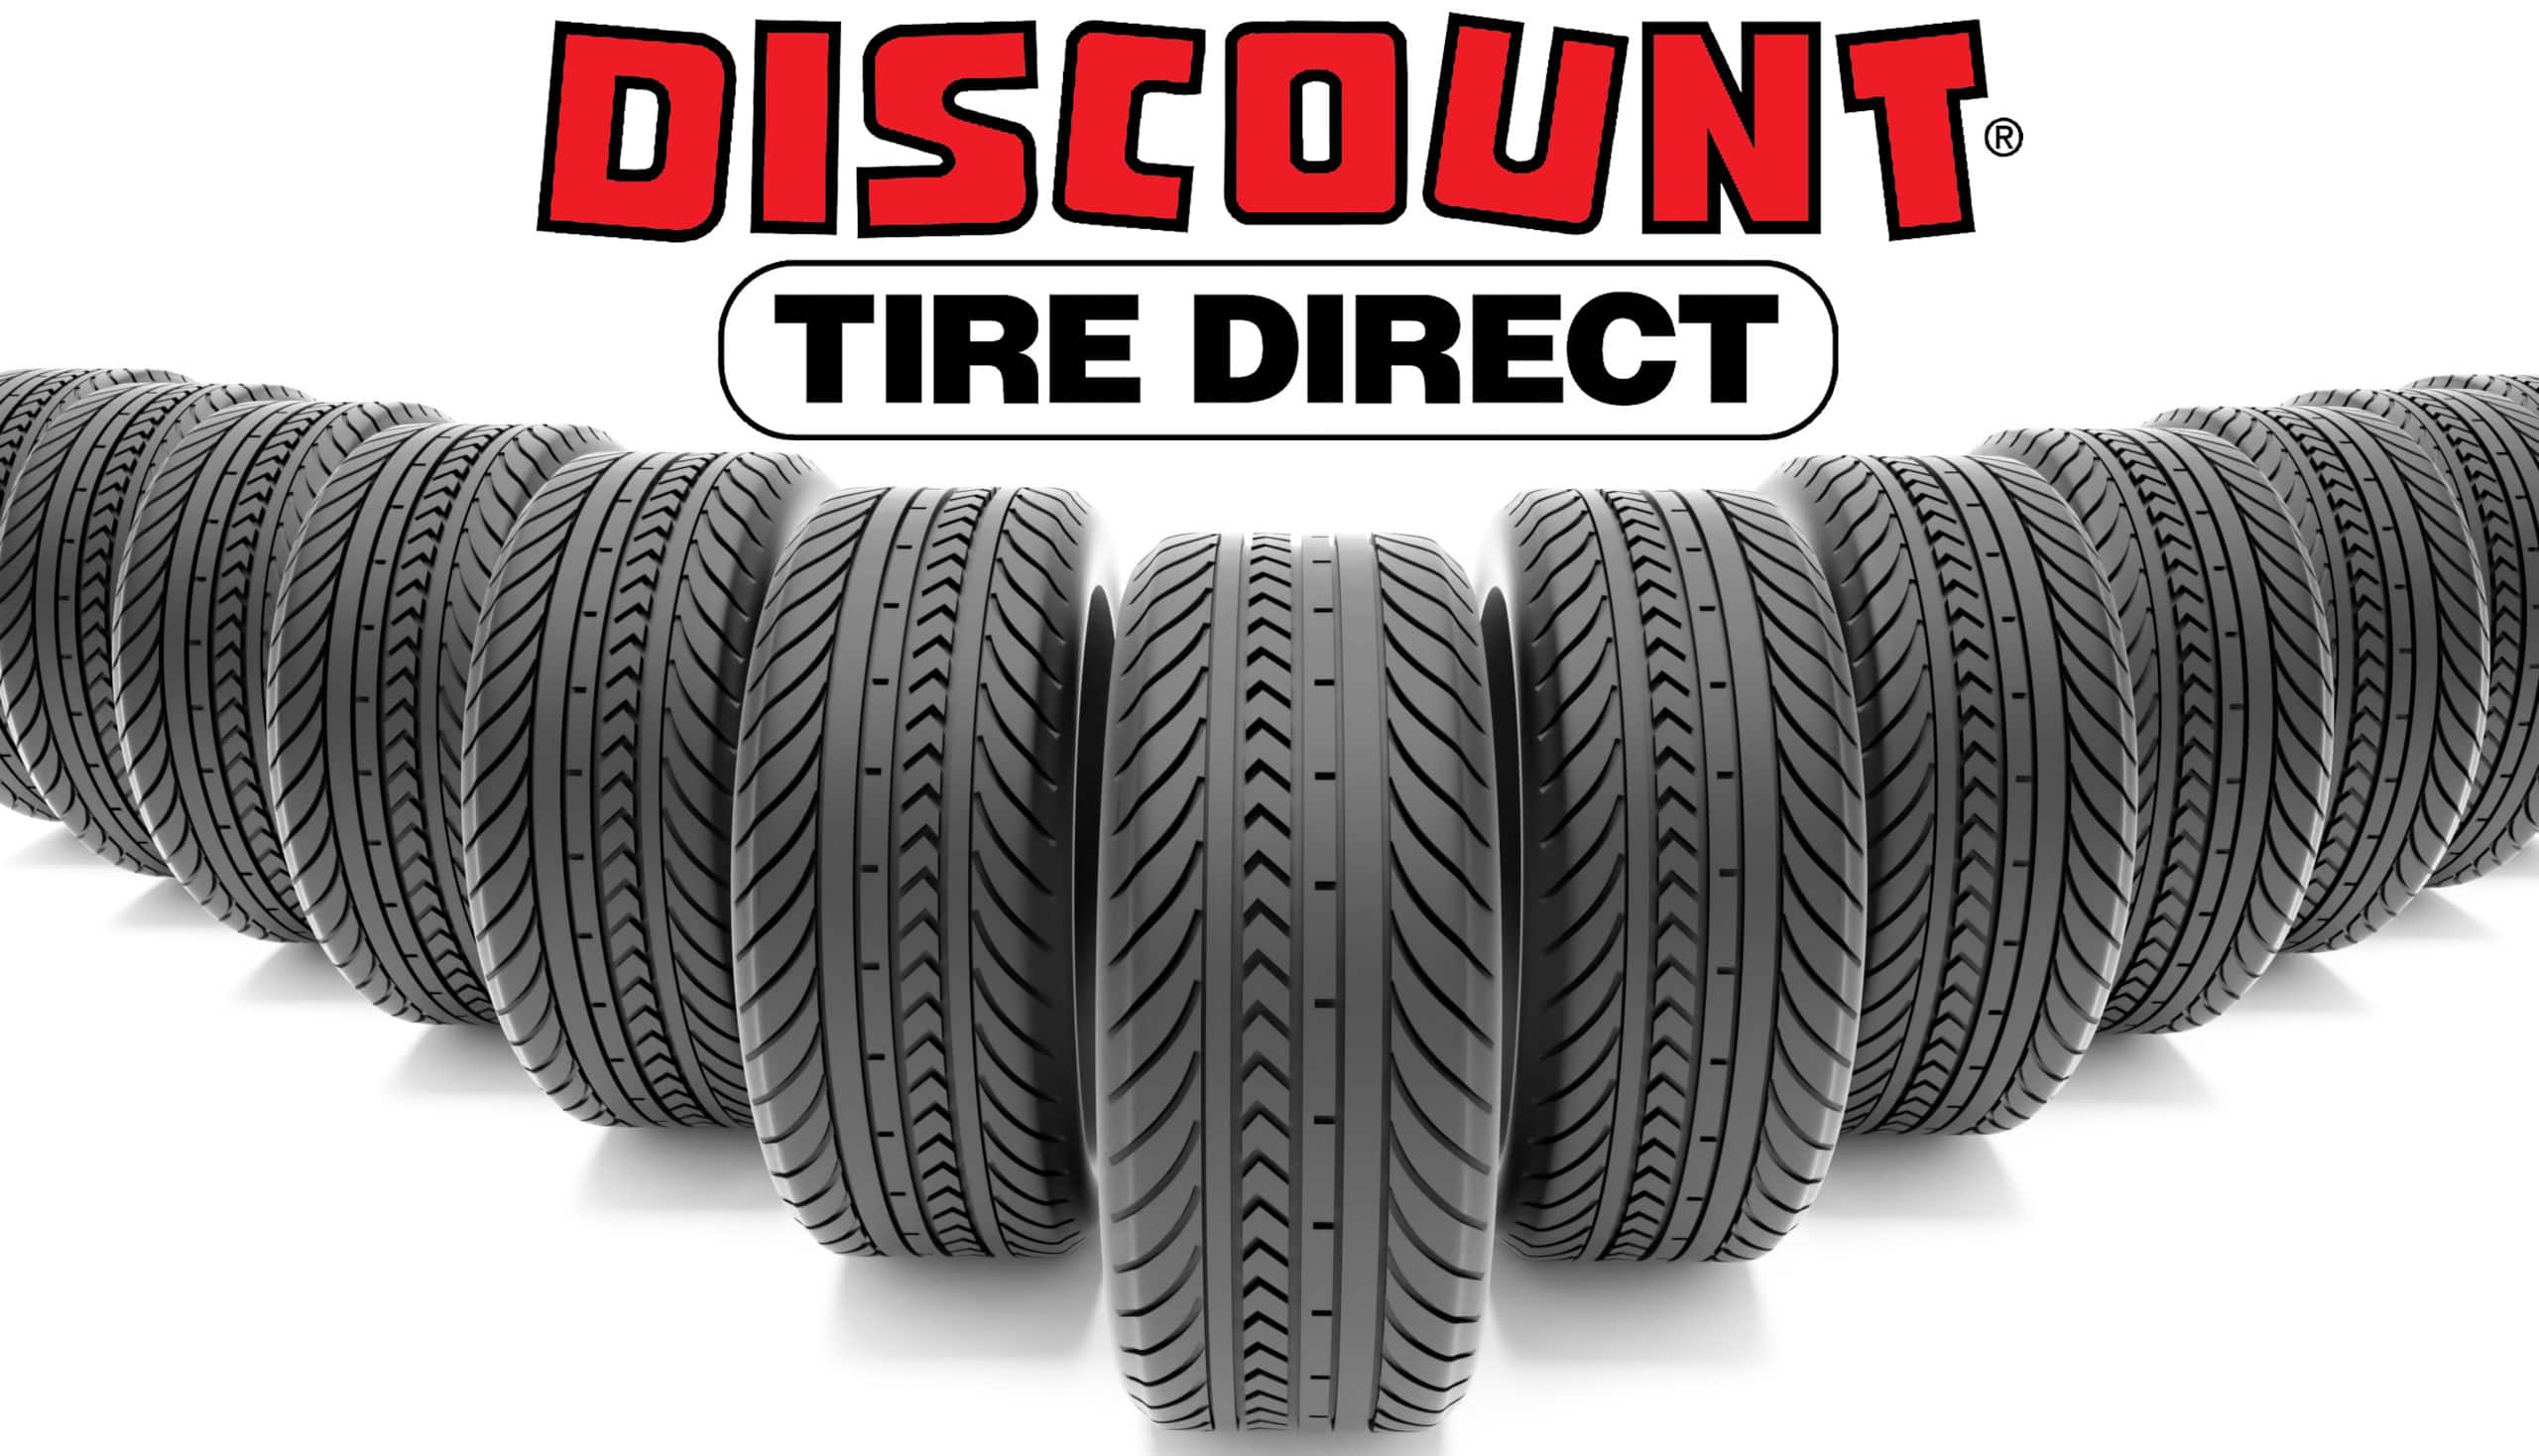 Discover the latest TireBuyer coupons, promo codes, deals, and free shipping offers on Groupon Coupons and get the biggest discounts around! Click here to save!